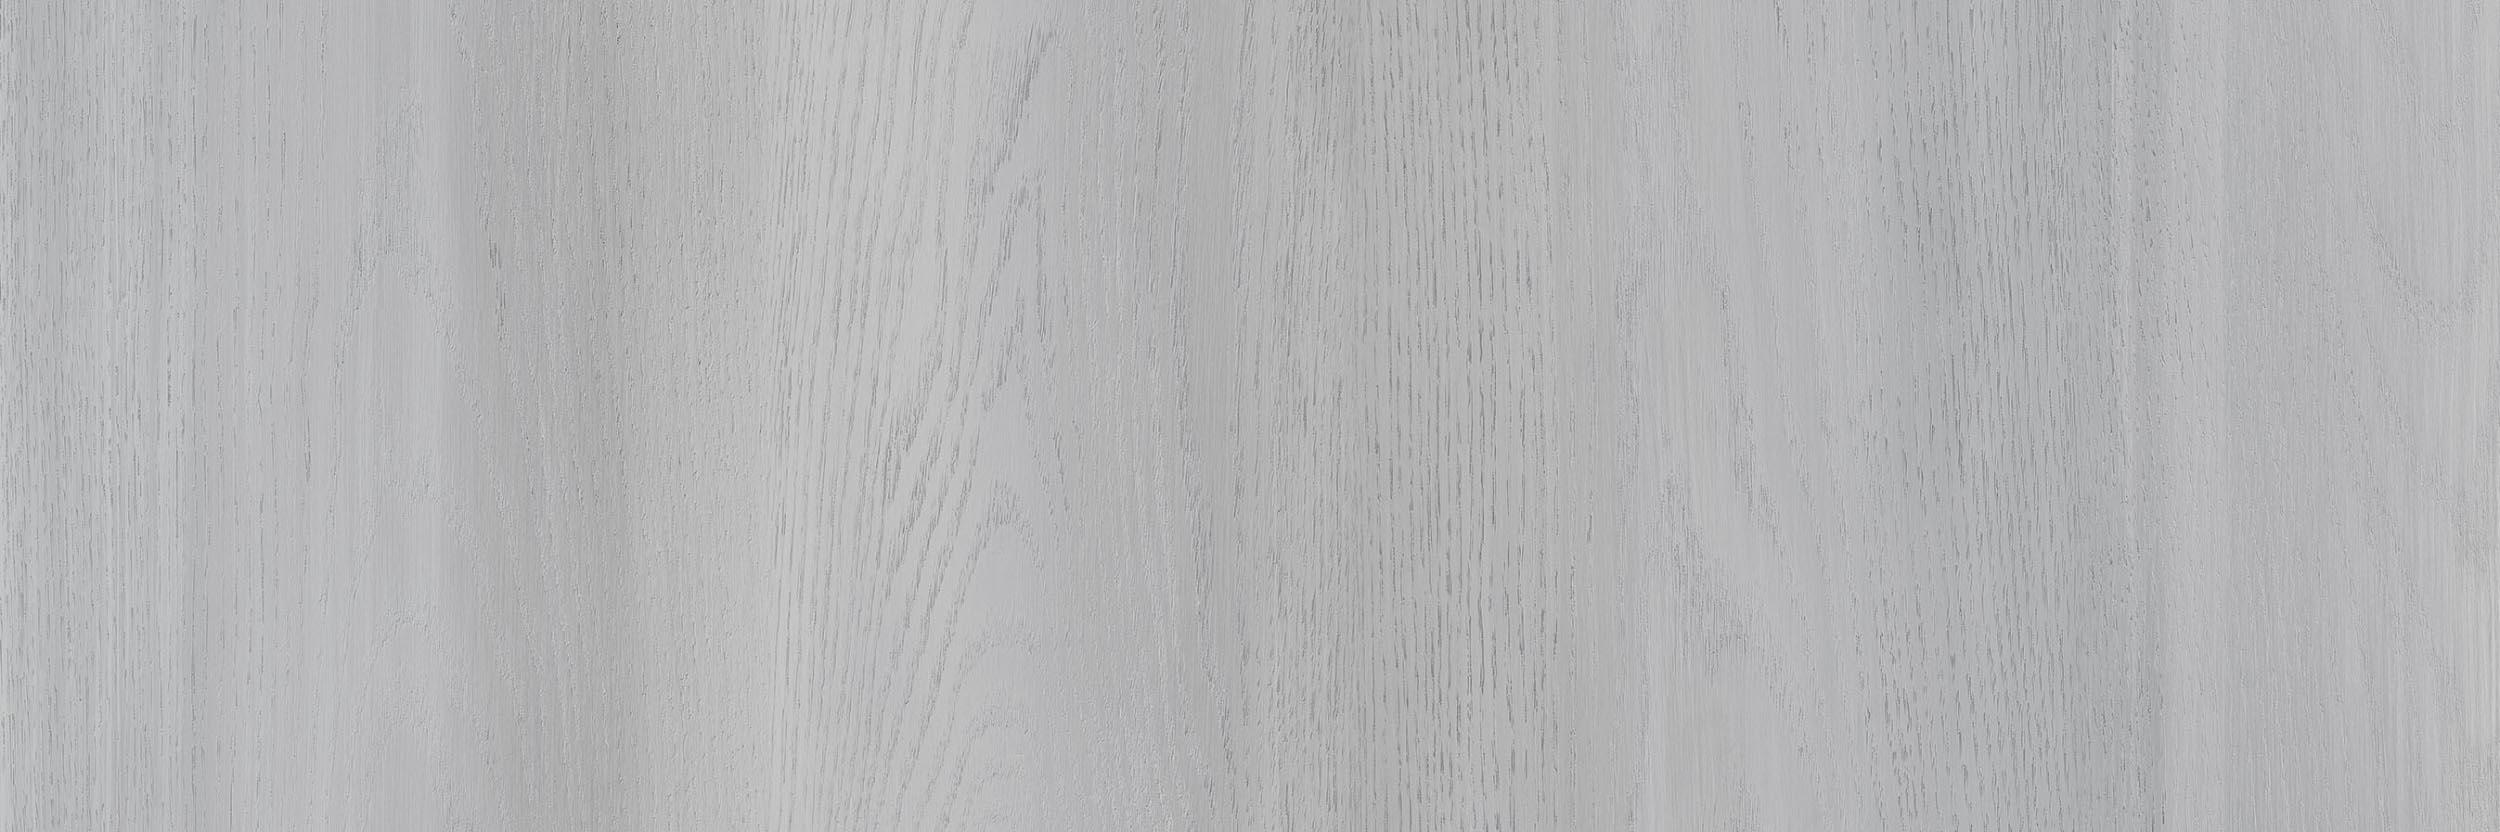 Meditation Oak Y0781 Laminate Countertops